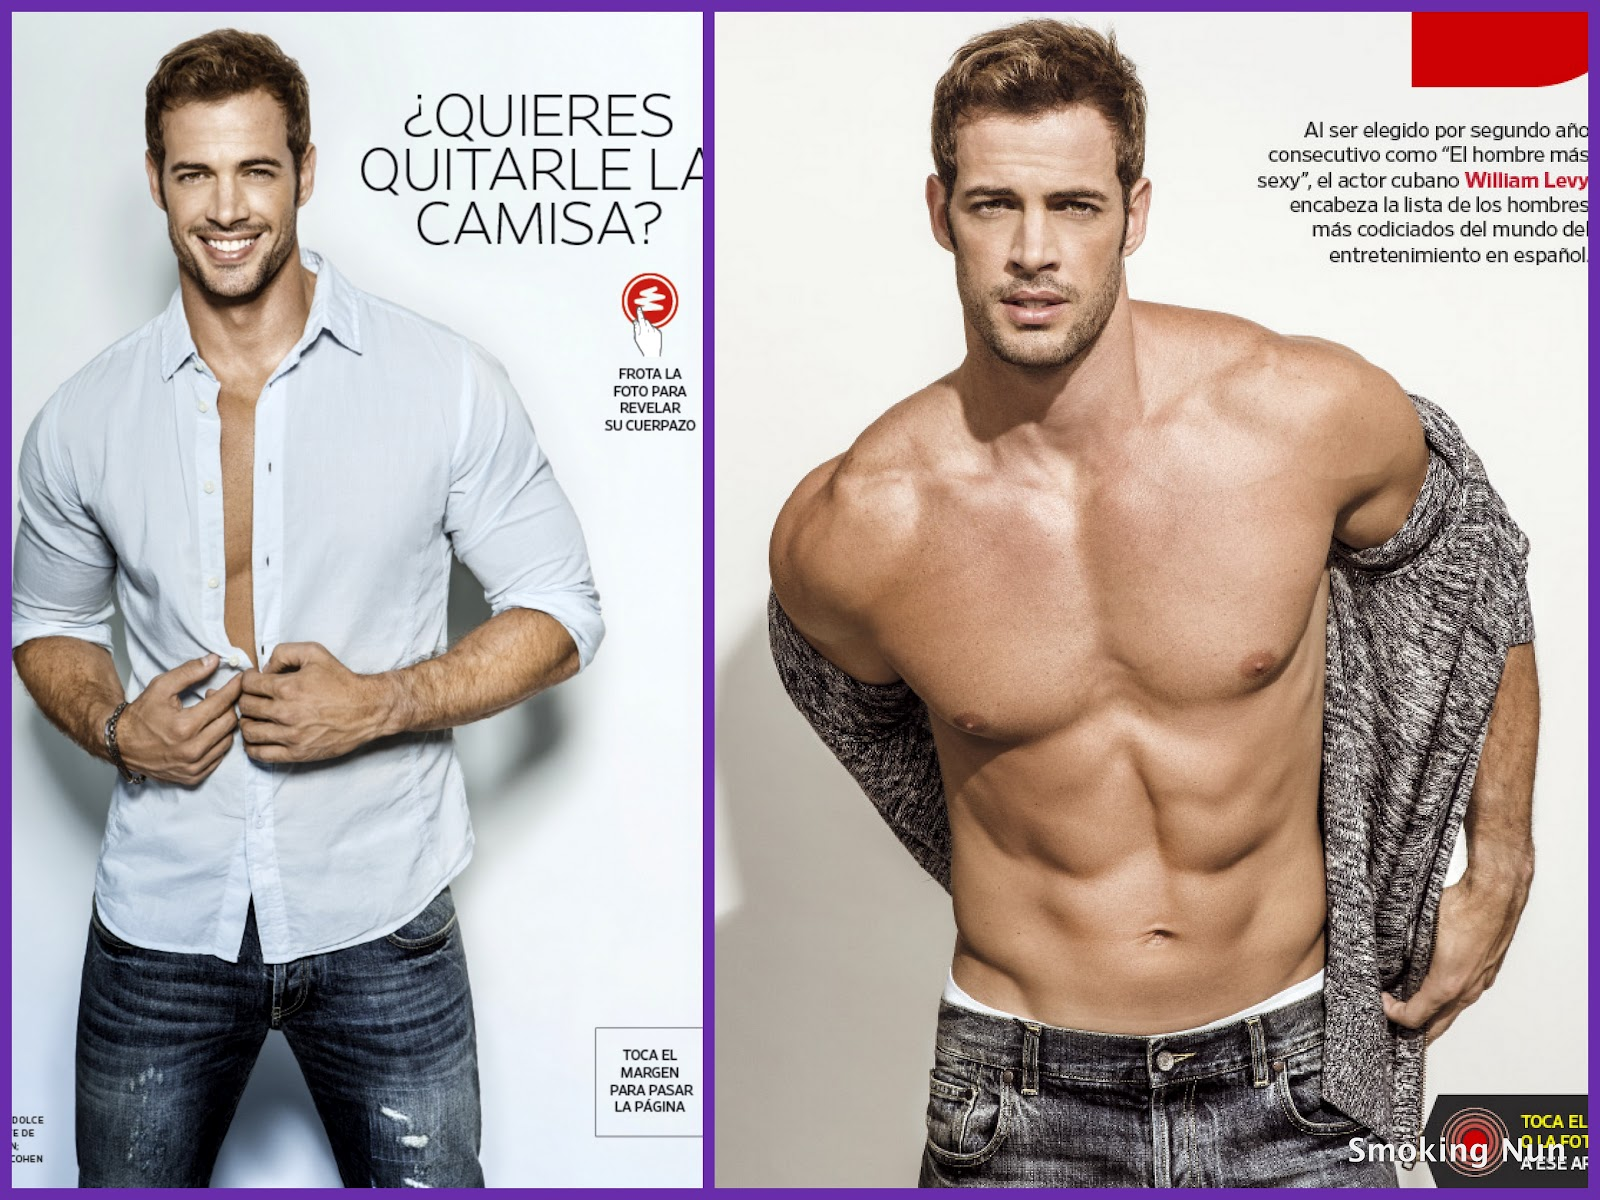 William Levy S  People En Espa  Ol   Sexiest Man Alive  Inside Spread